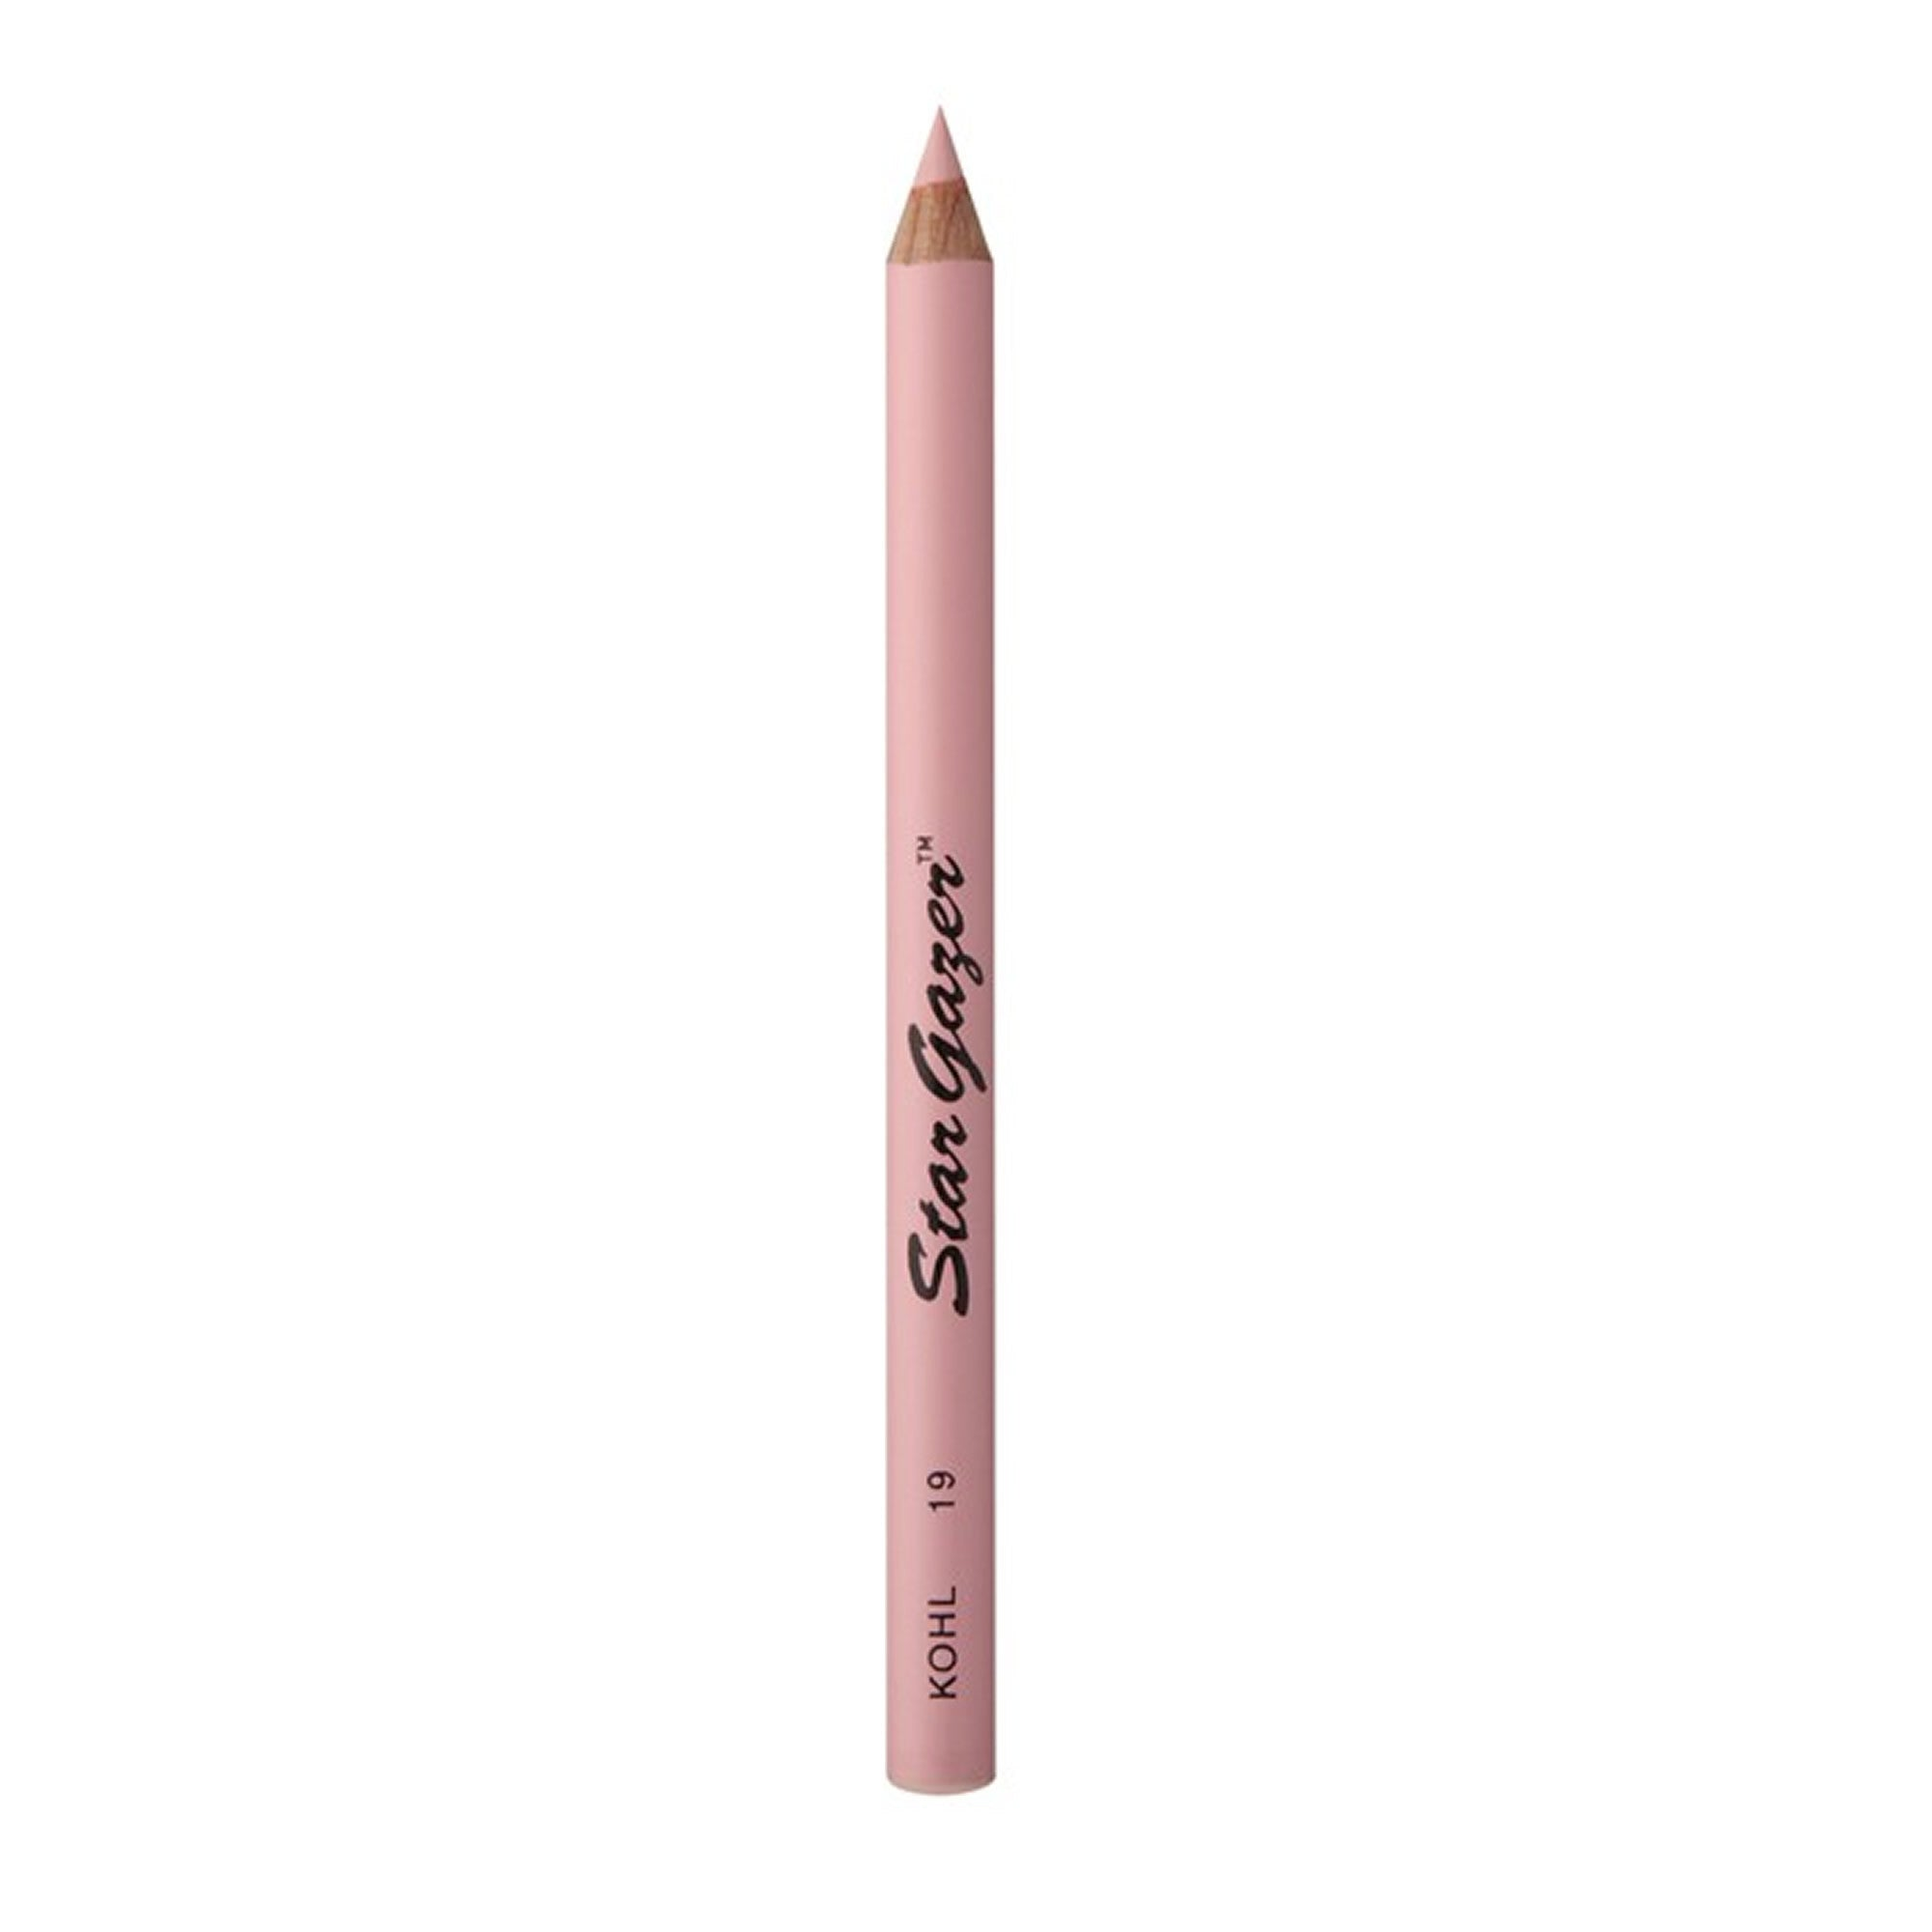 Stargazer Lip Pencil - 19 - Red Carpet FX - Professional Makeup